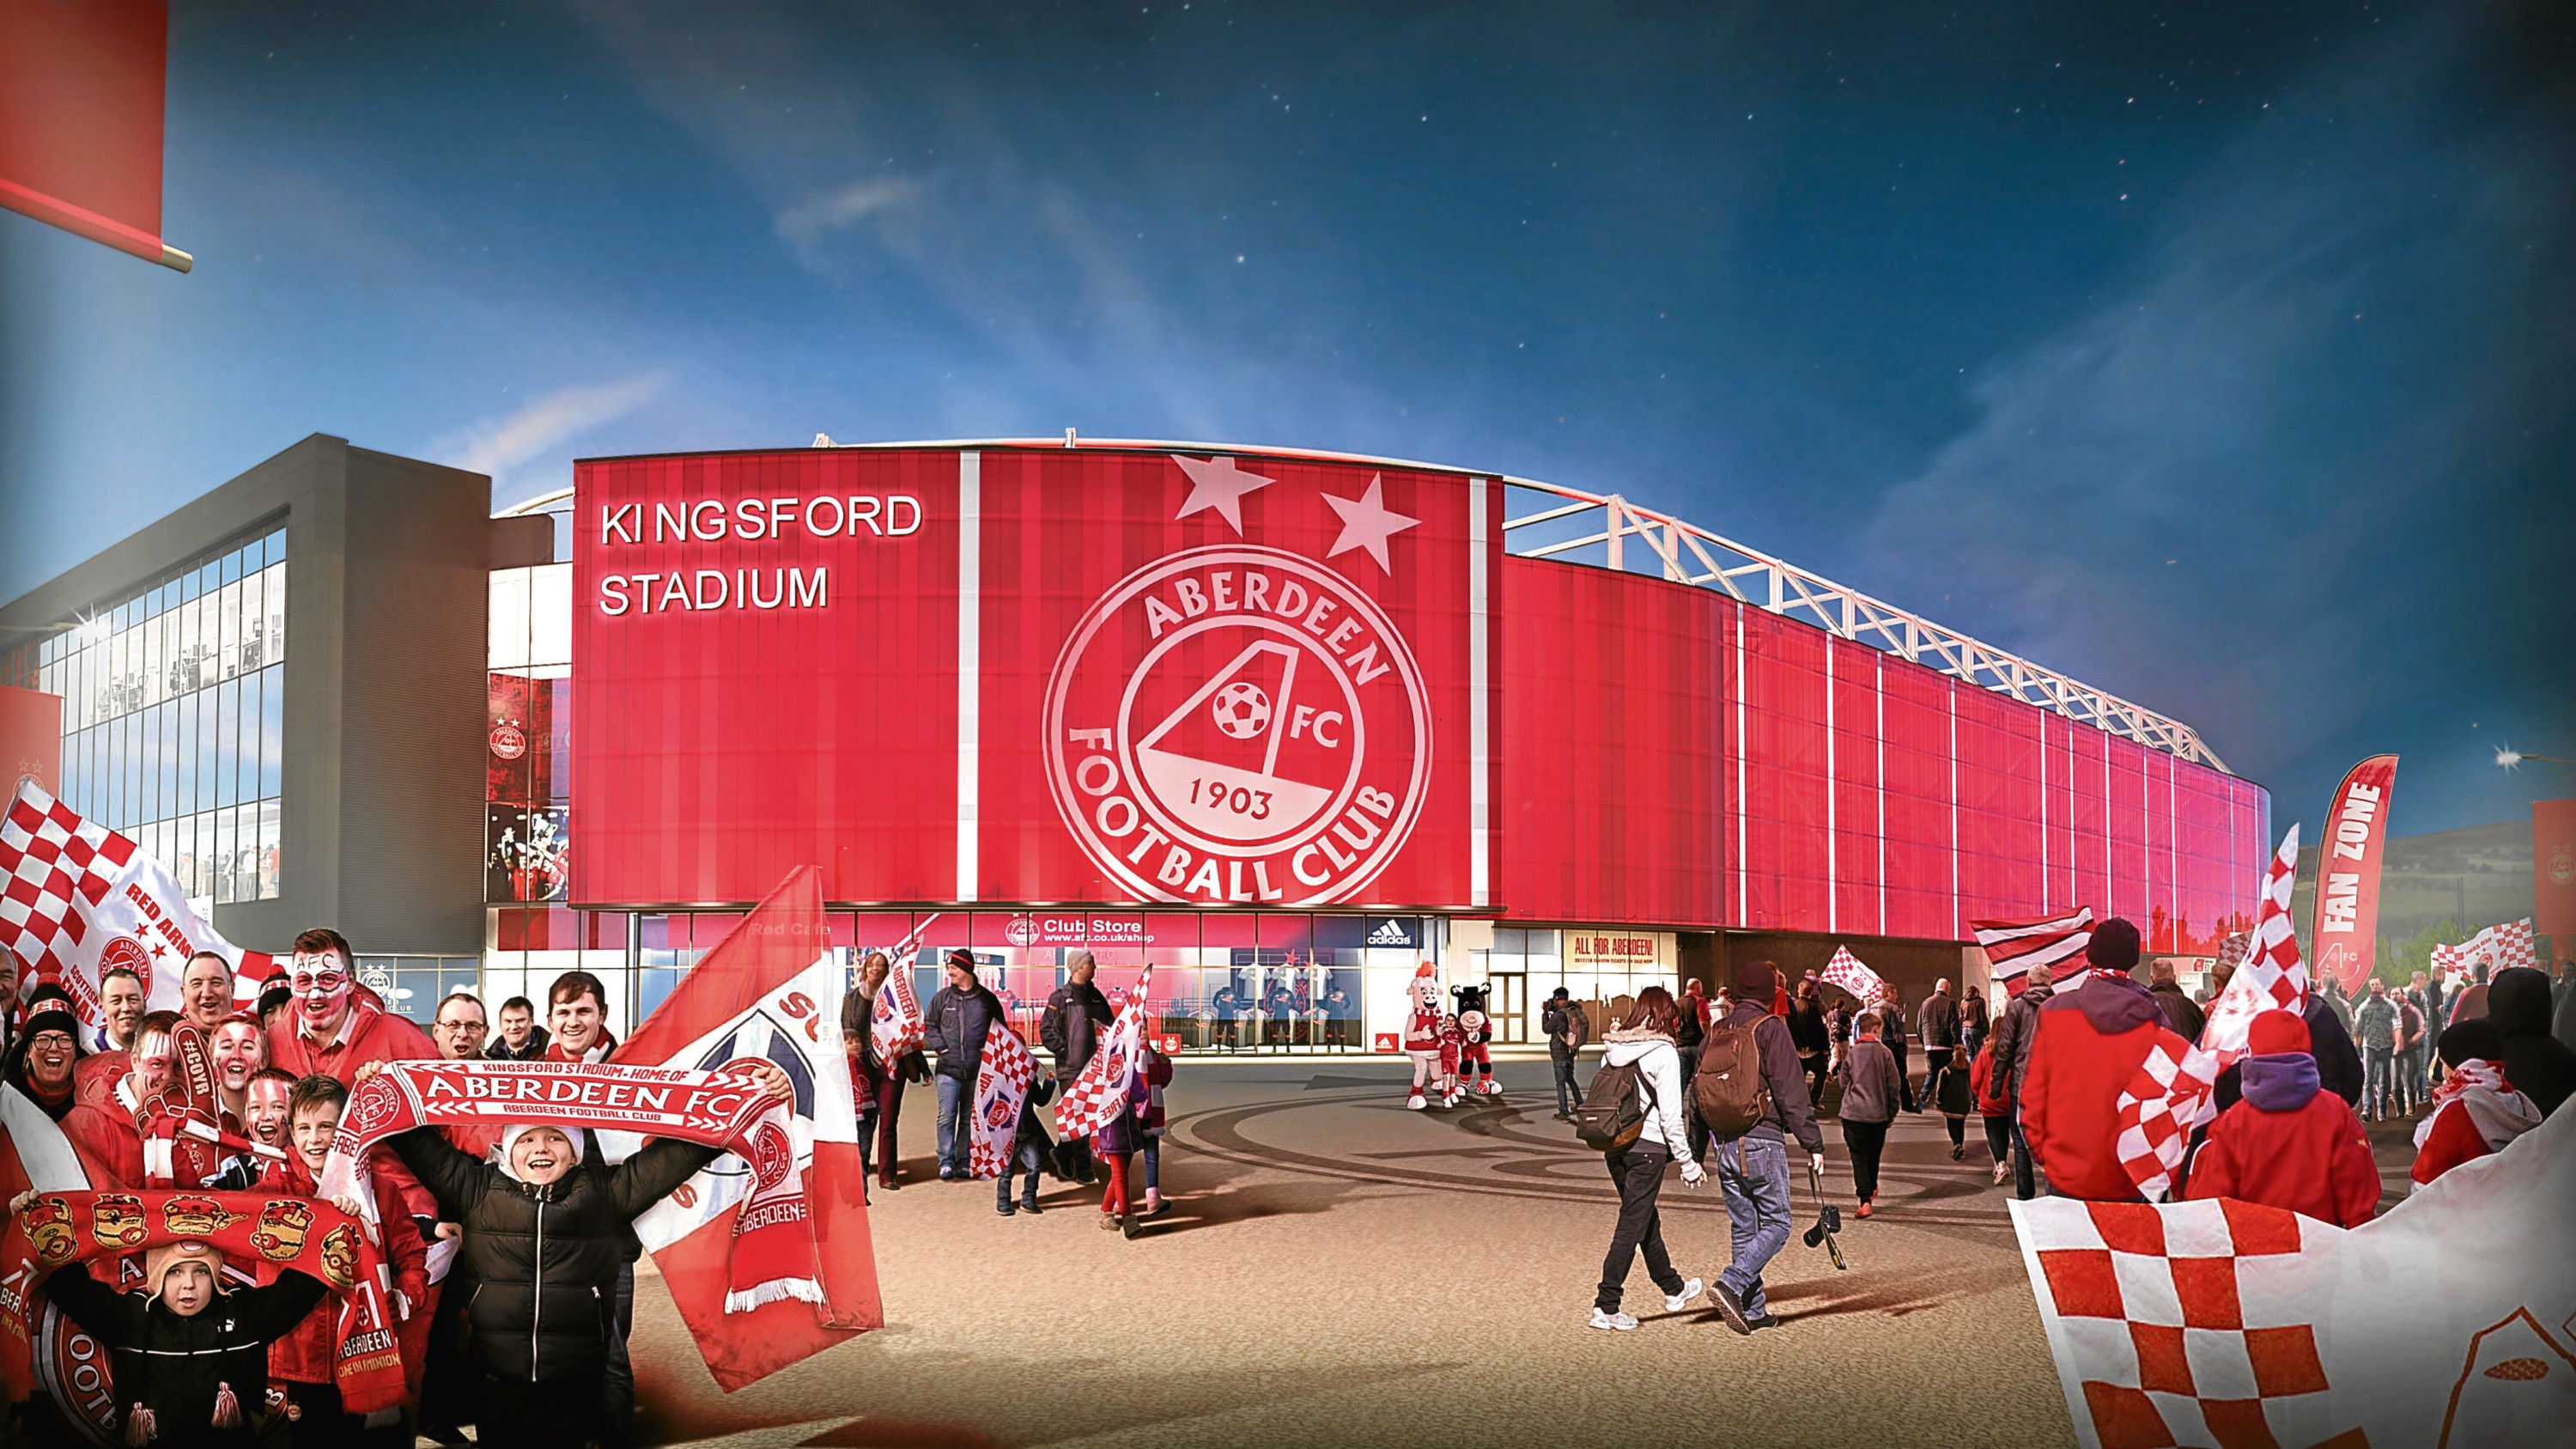 After 18 years in the planning, Kingsford stadium is set to see work begin.